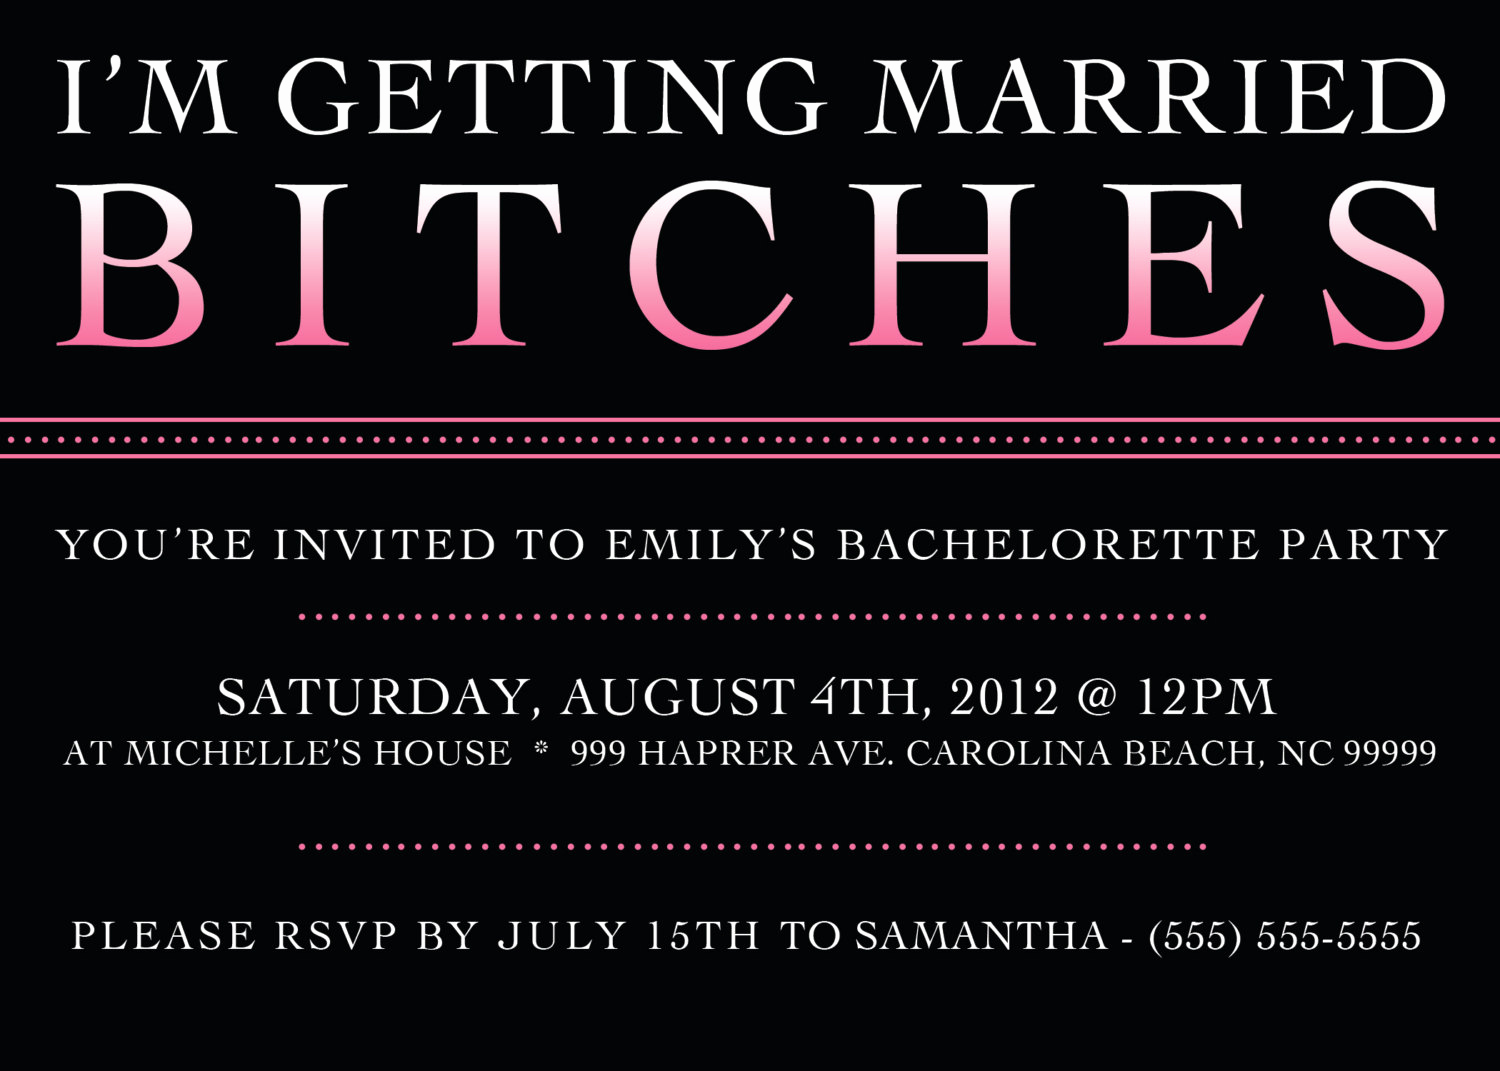 Bachelorette Party Invitation Template Inspirational Printable Bachelorette Party Invitation 5 X 7 Bachelorette